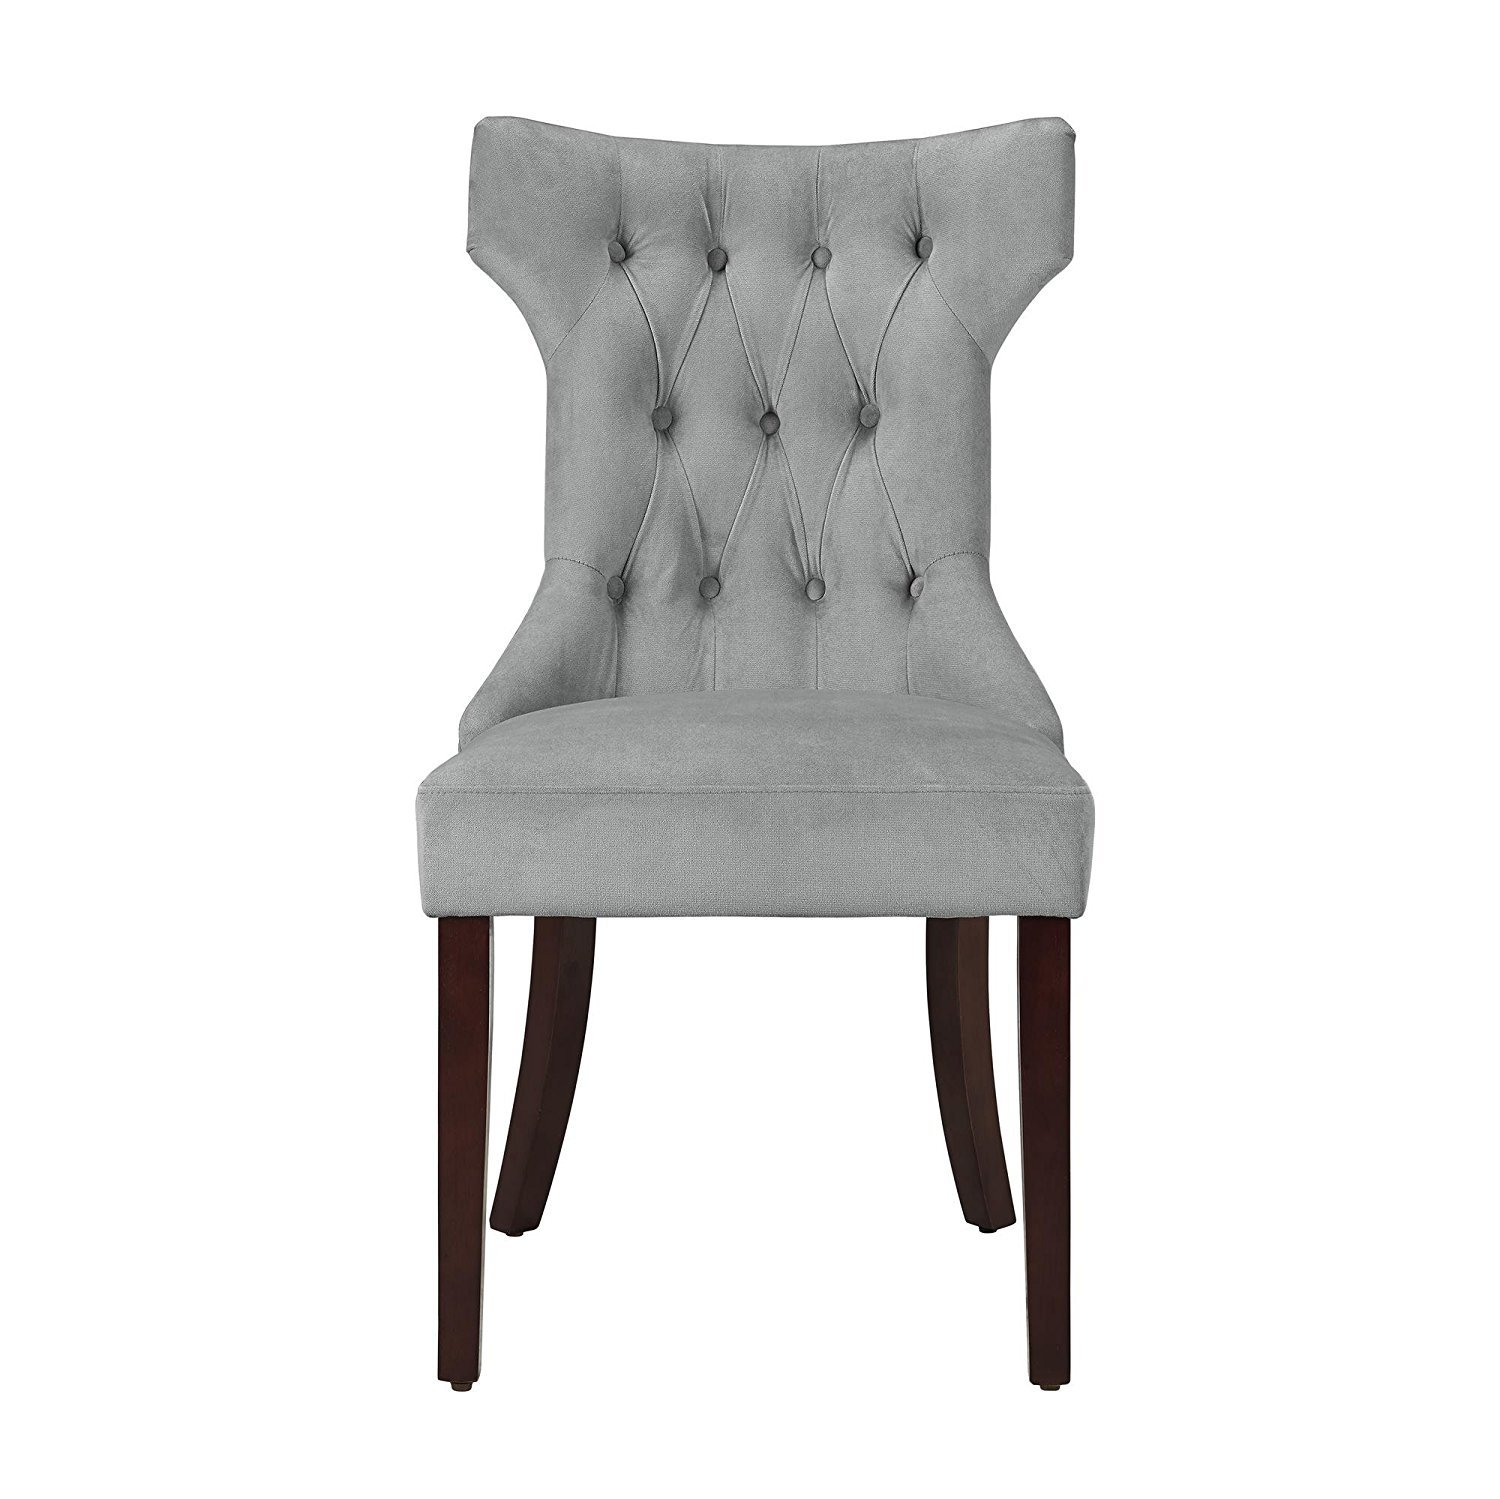 Dorel Living DA6090-PL Clairborne Upholstered dining chair, set of 2, Gray by Dorel Living